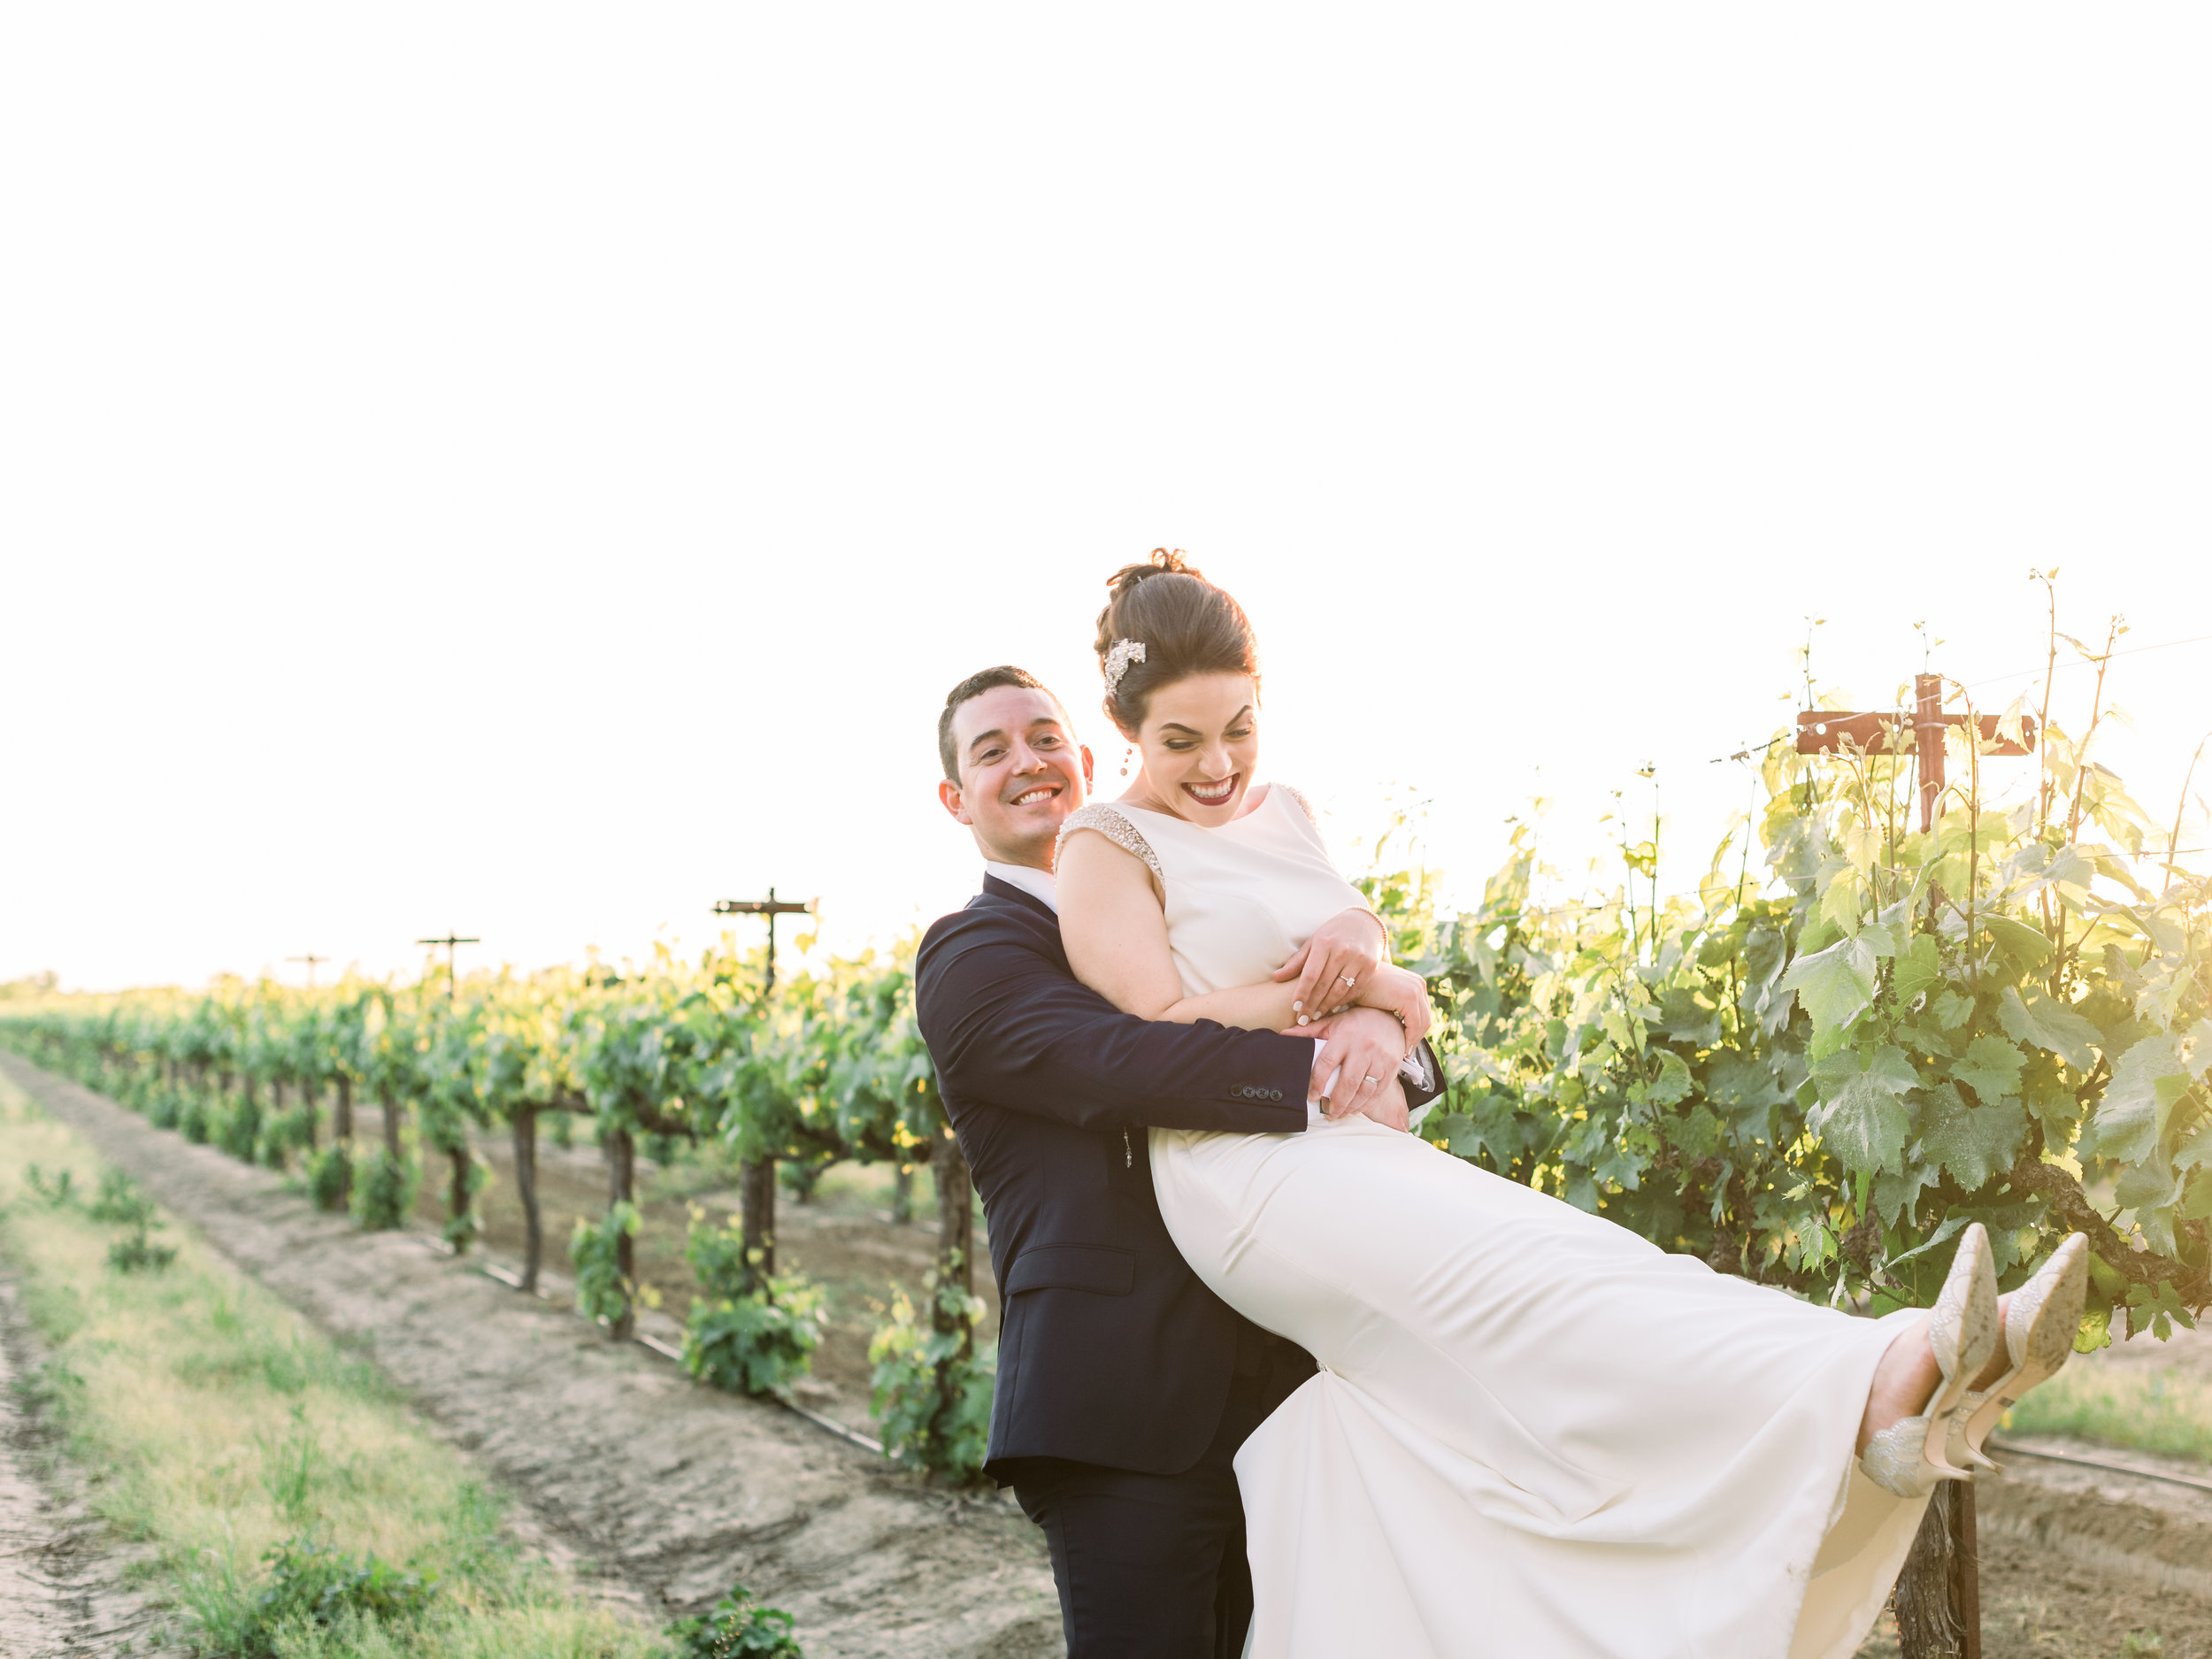 groom-playfully-swinging-bride-around-in-vineyard.jpg